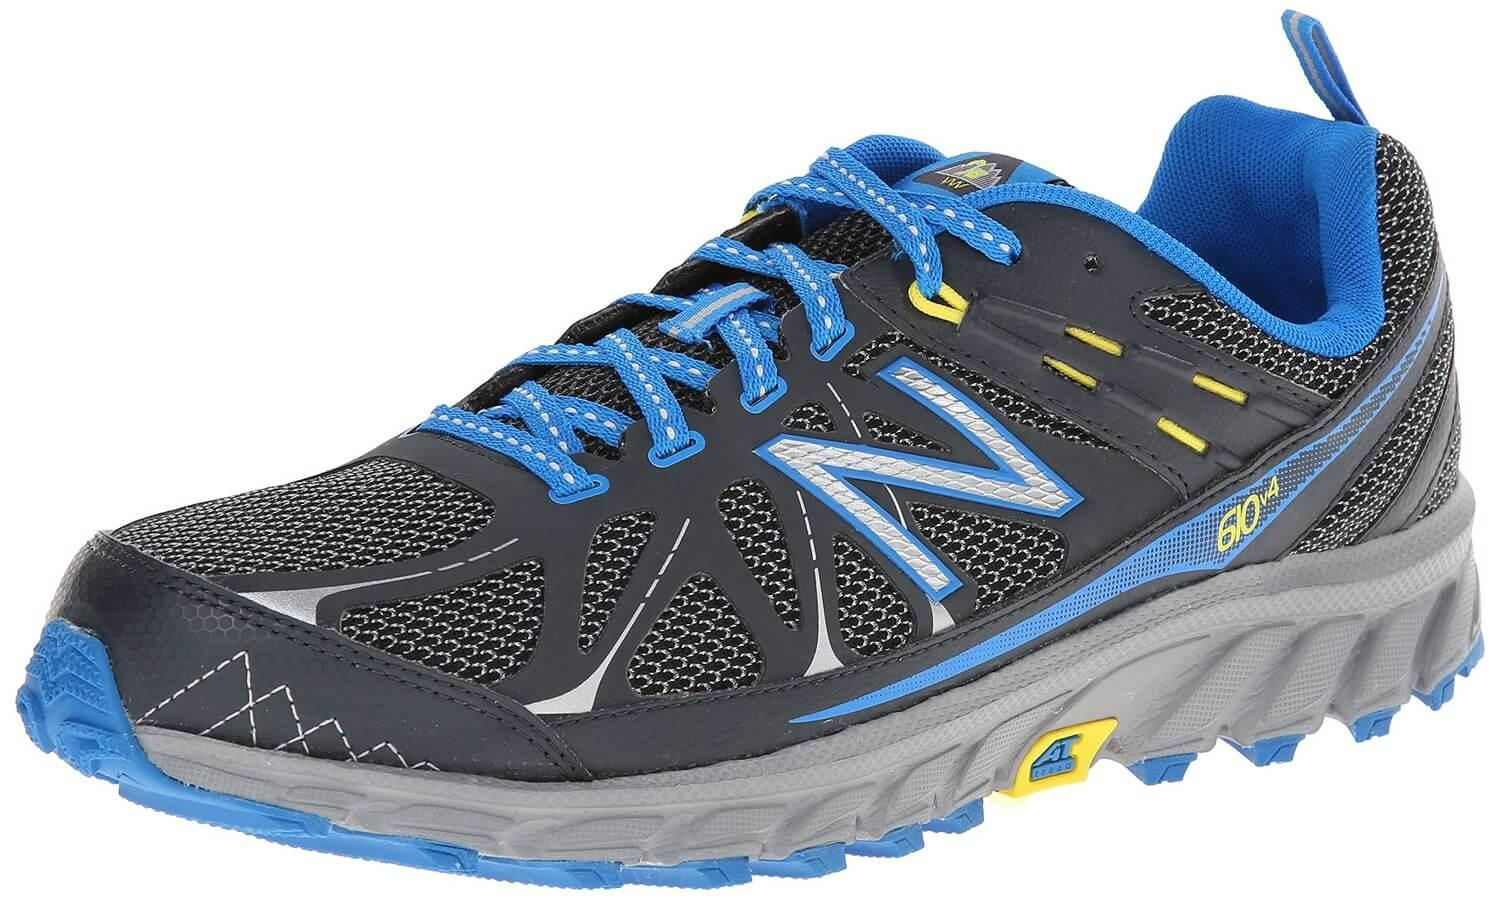 Best Sports Shoe For Overweight People